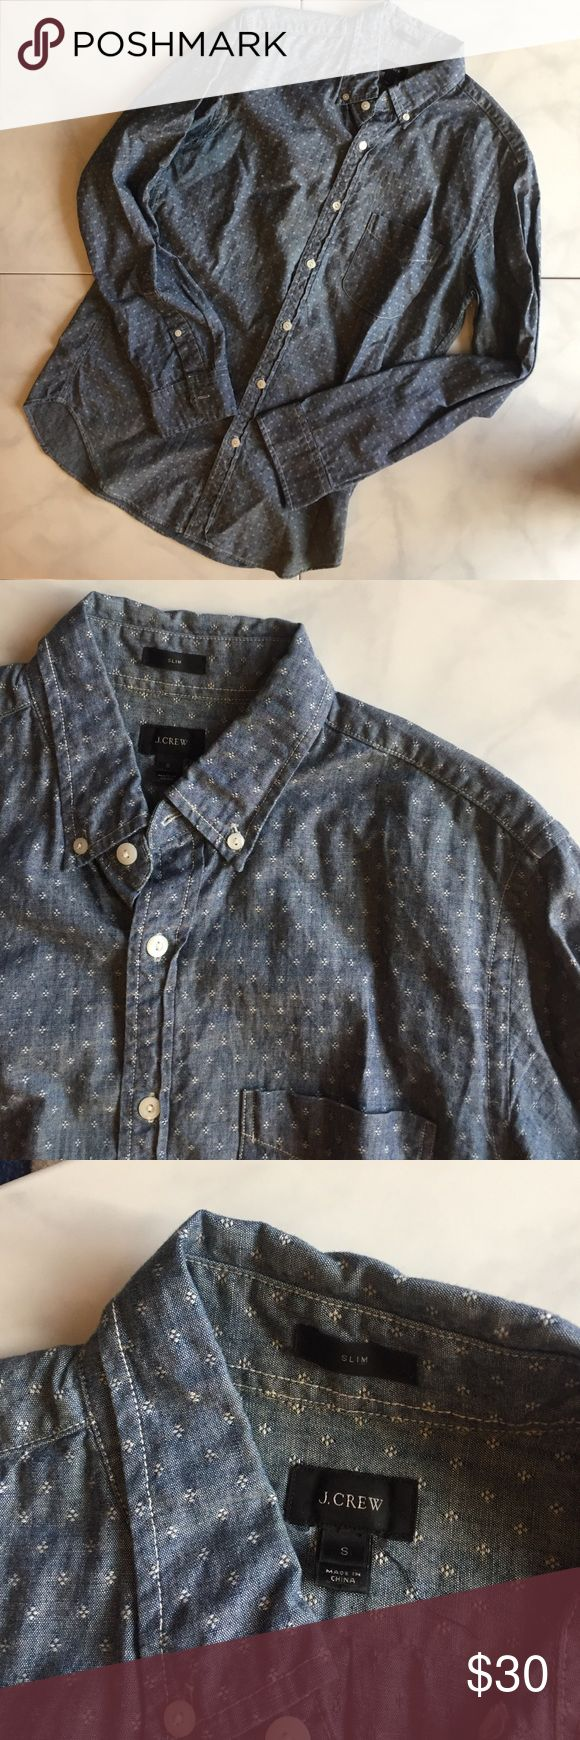 Men's J Crew Slim Chambray Top. Size S Chambray top with diamond pattern and pocket. Good condition. Slim fit. Size S. J. Crew Shirts Casual Button Down Shirts